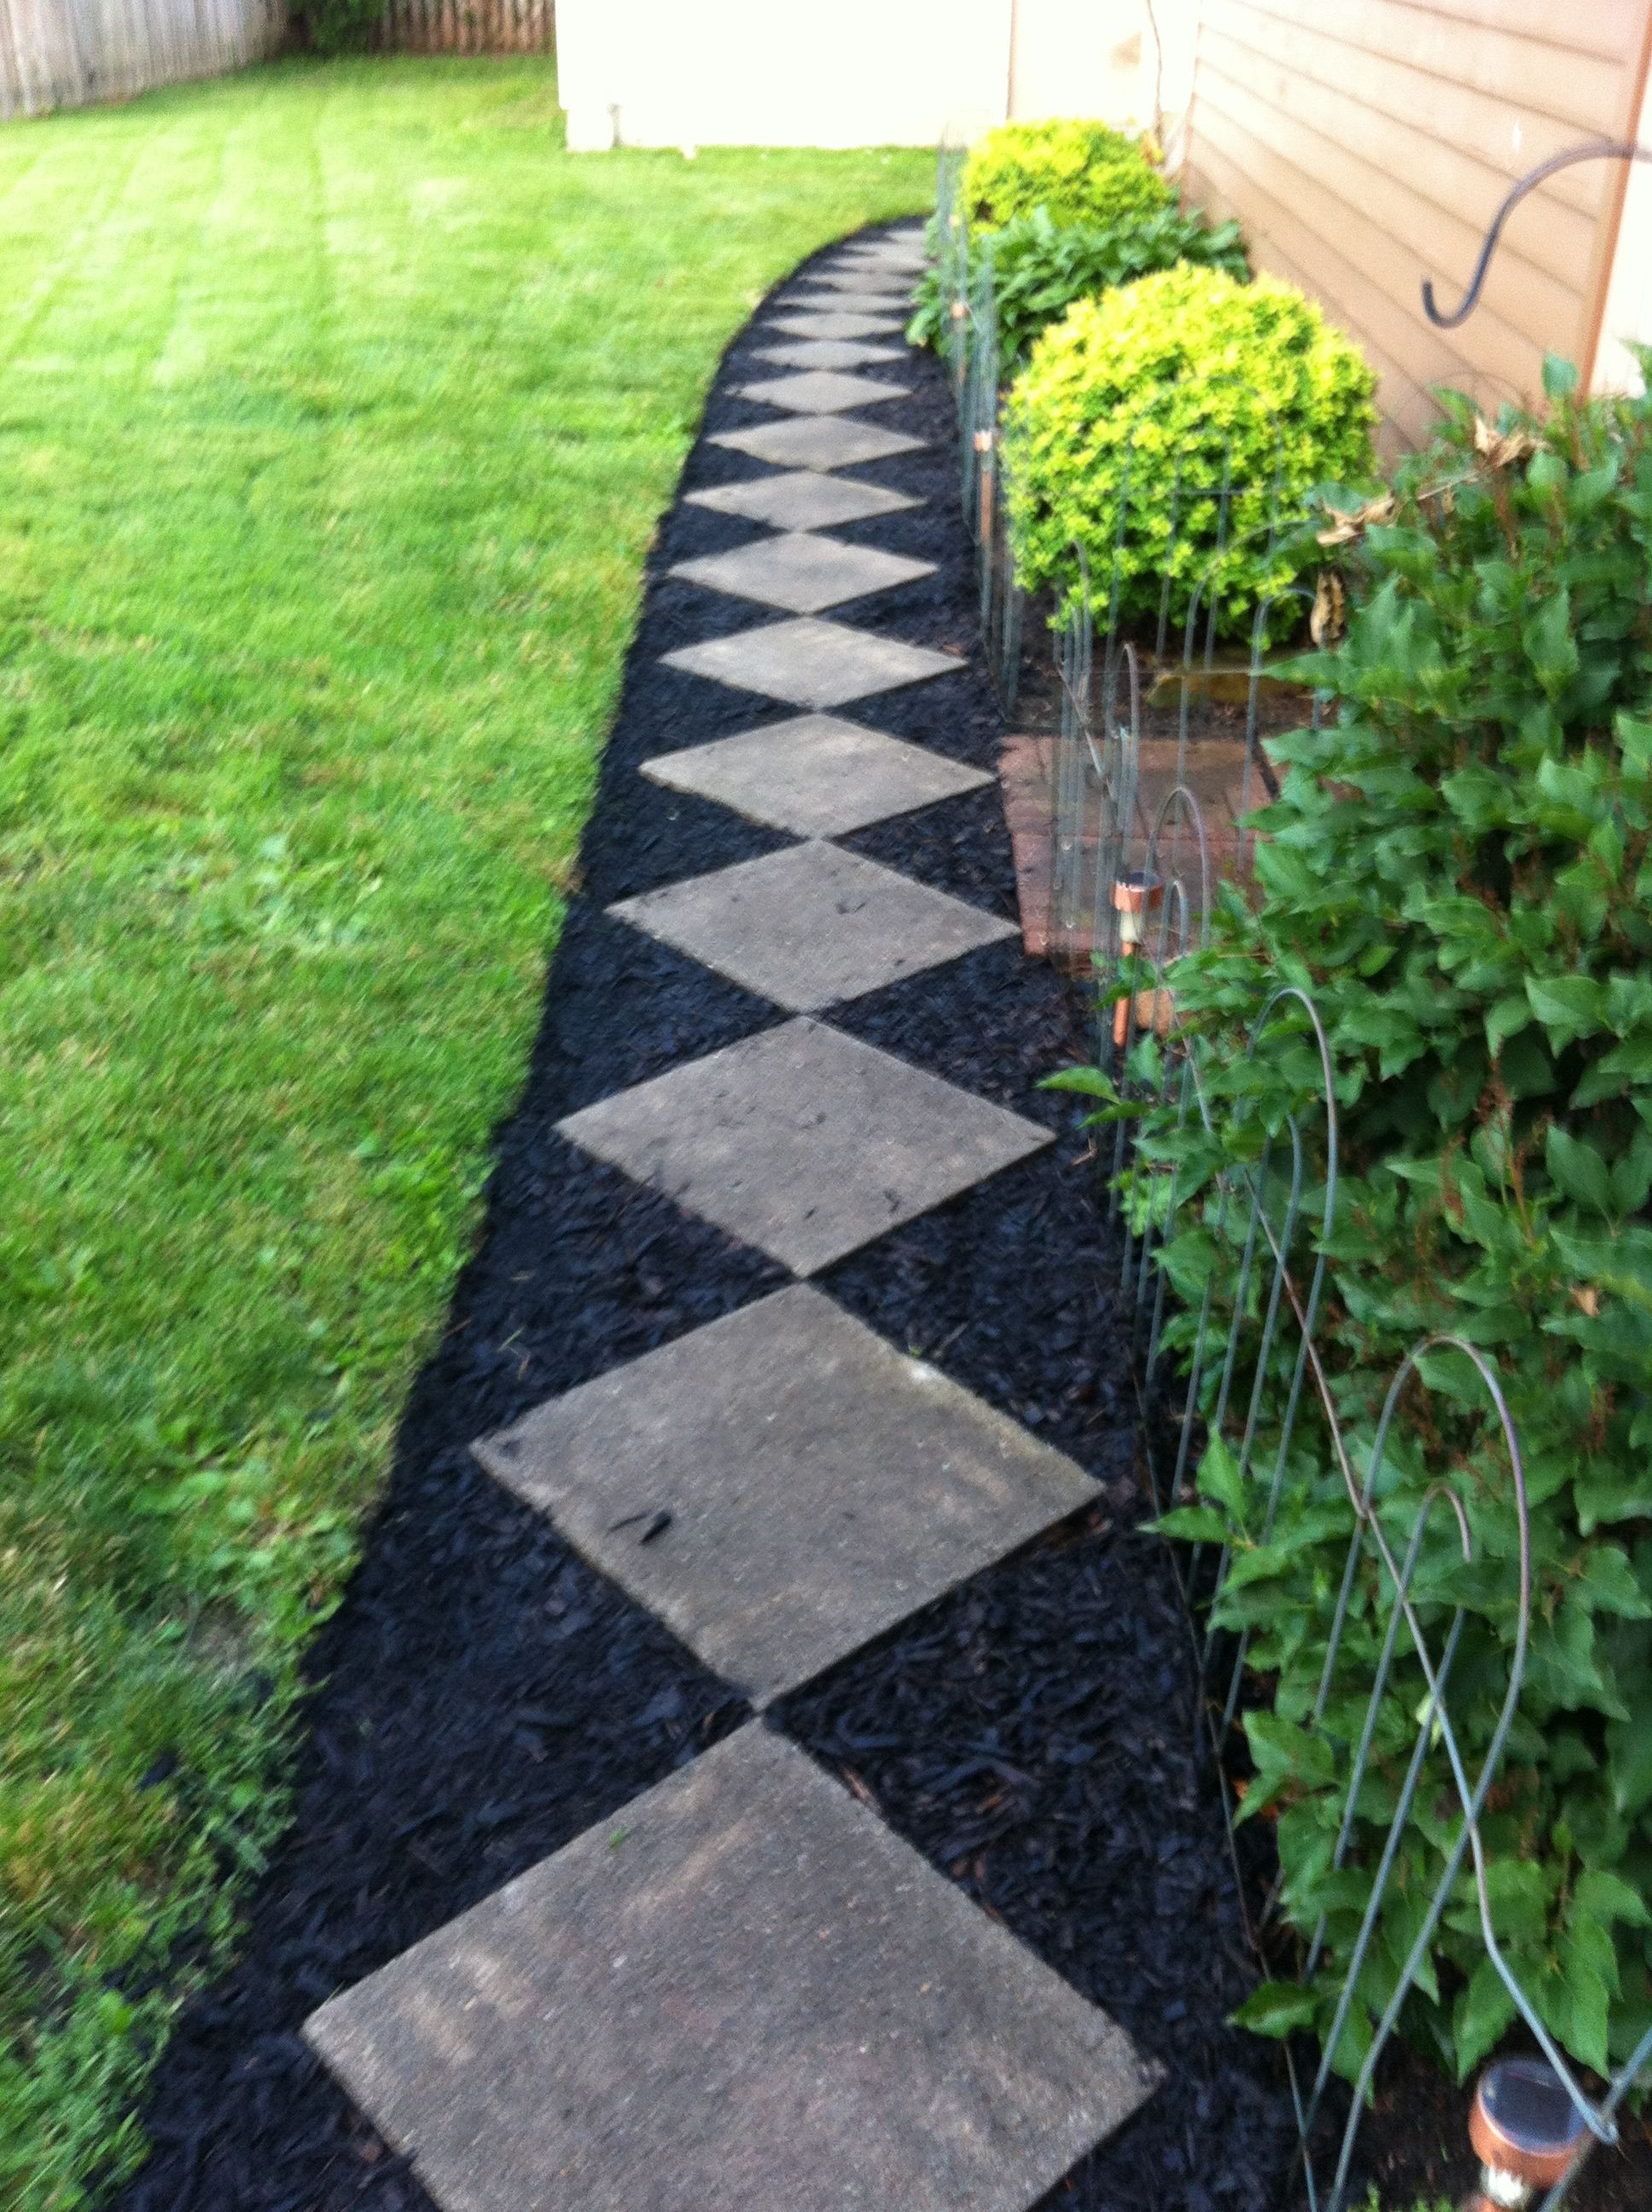 Patio stones placed corner to corner for an inexpensive walk with a